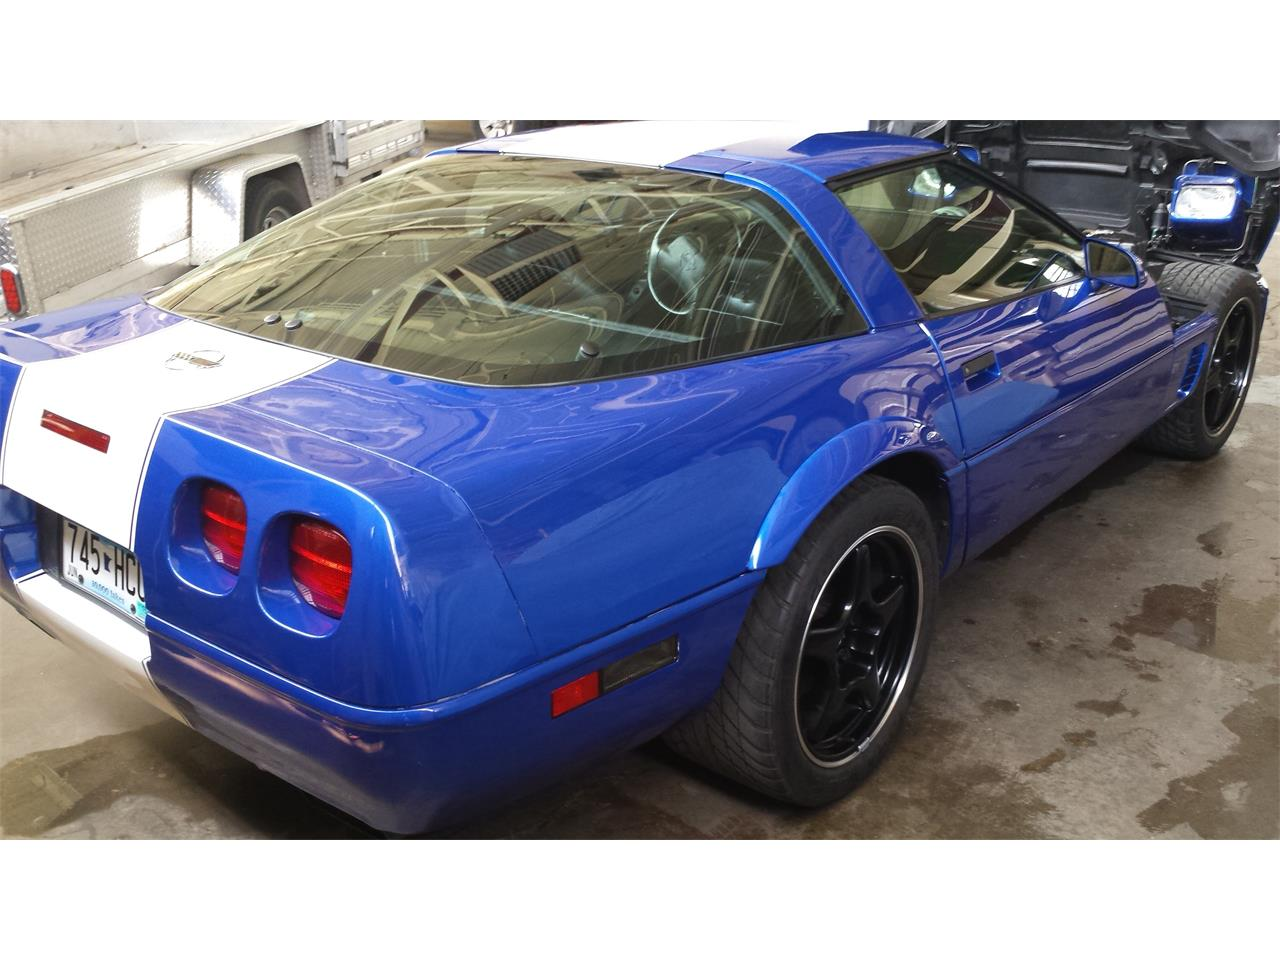 Large Picture of '96 Chevrolet Corvette located in Minnesota - $36,000.00 - MXIW